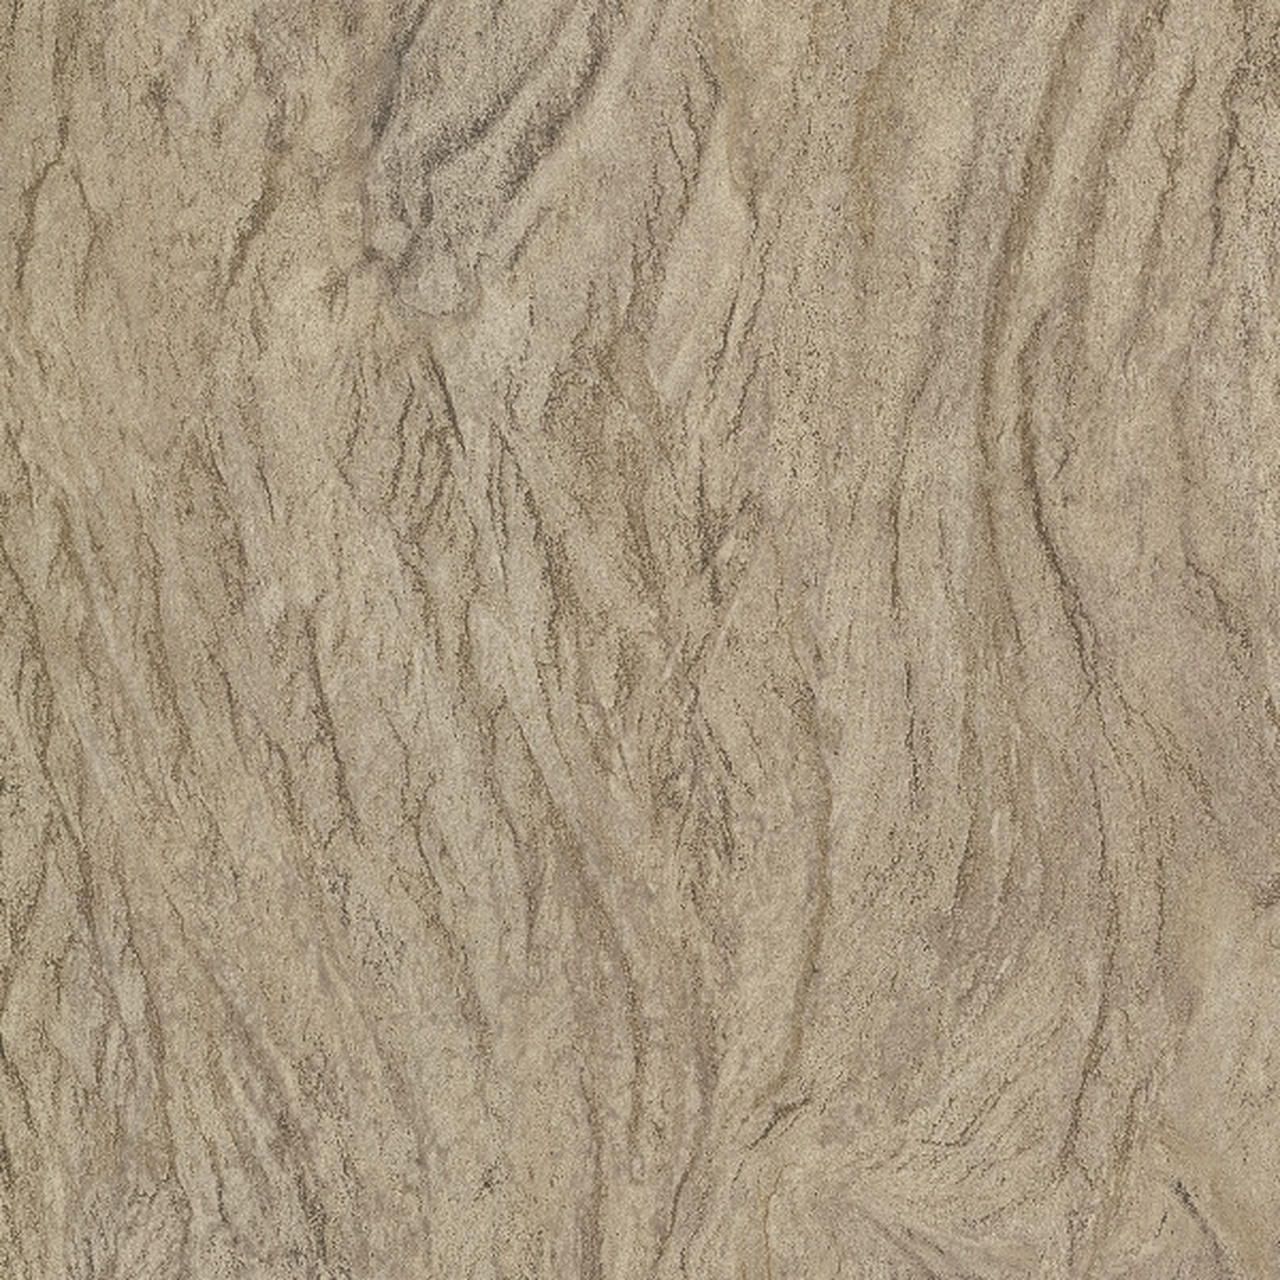 Brewster Advantage Stones Woods 2774 503944 Wasatch Brown Marble 1280x1280